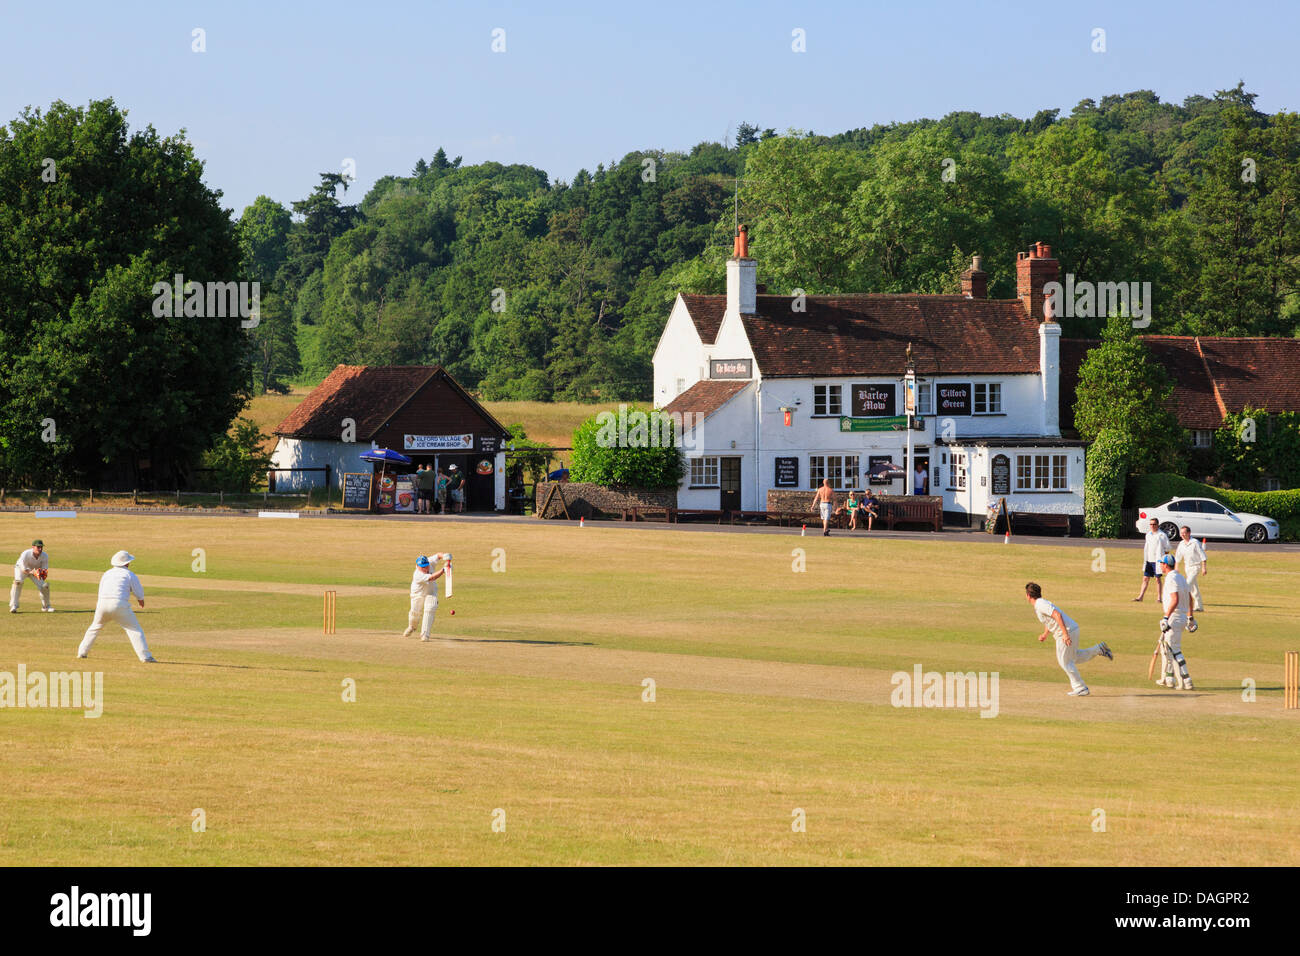 Local teams playing a cricket match on village green with scorched grass in front of Barley Mow pub on a summer - Stock Image